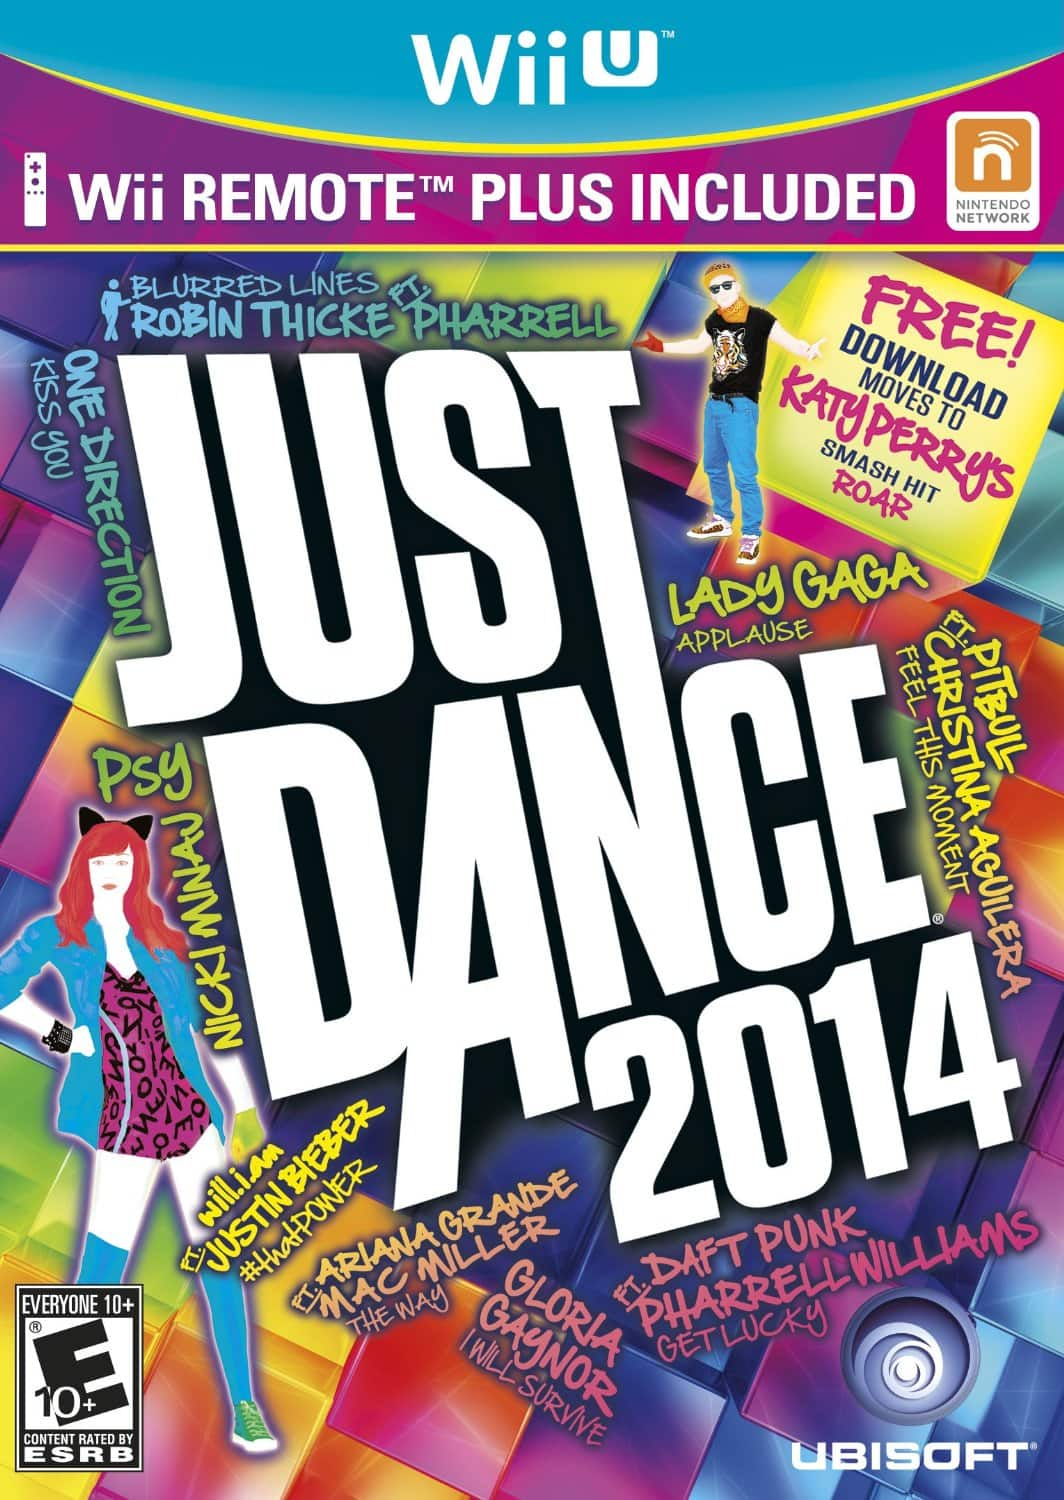 Just Dance 2014 Game (Nintendo Wii U) Bundle with Wii Remote Plus Controller for $29.99